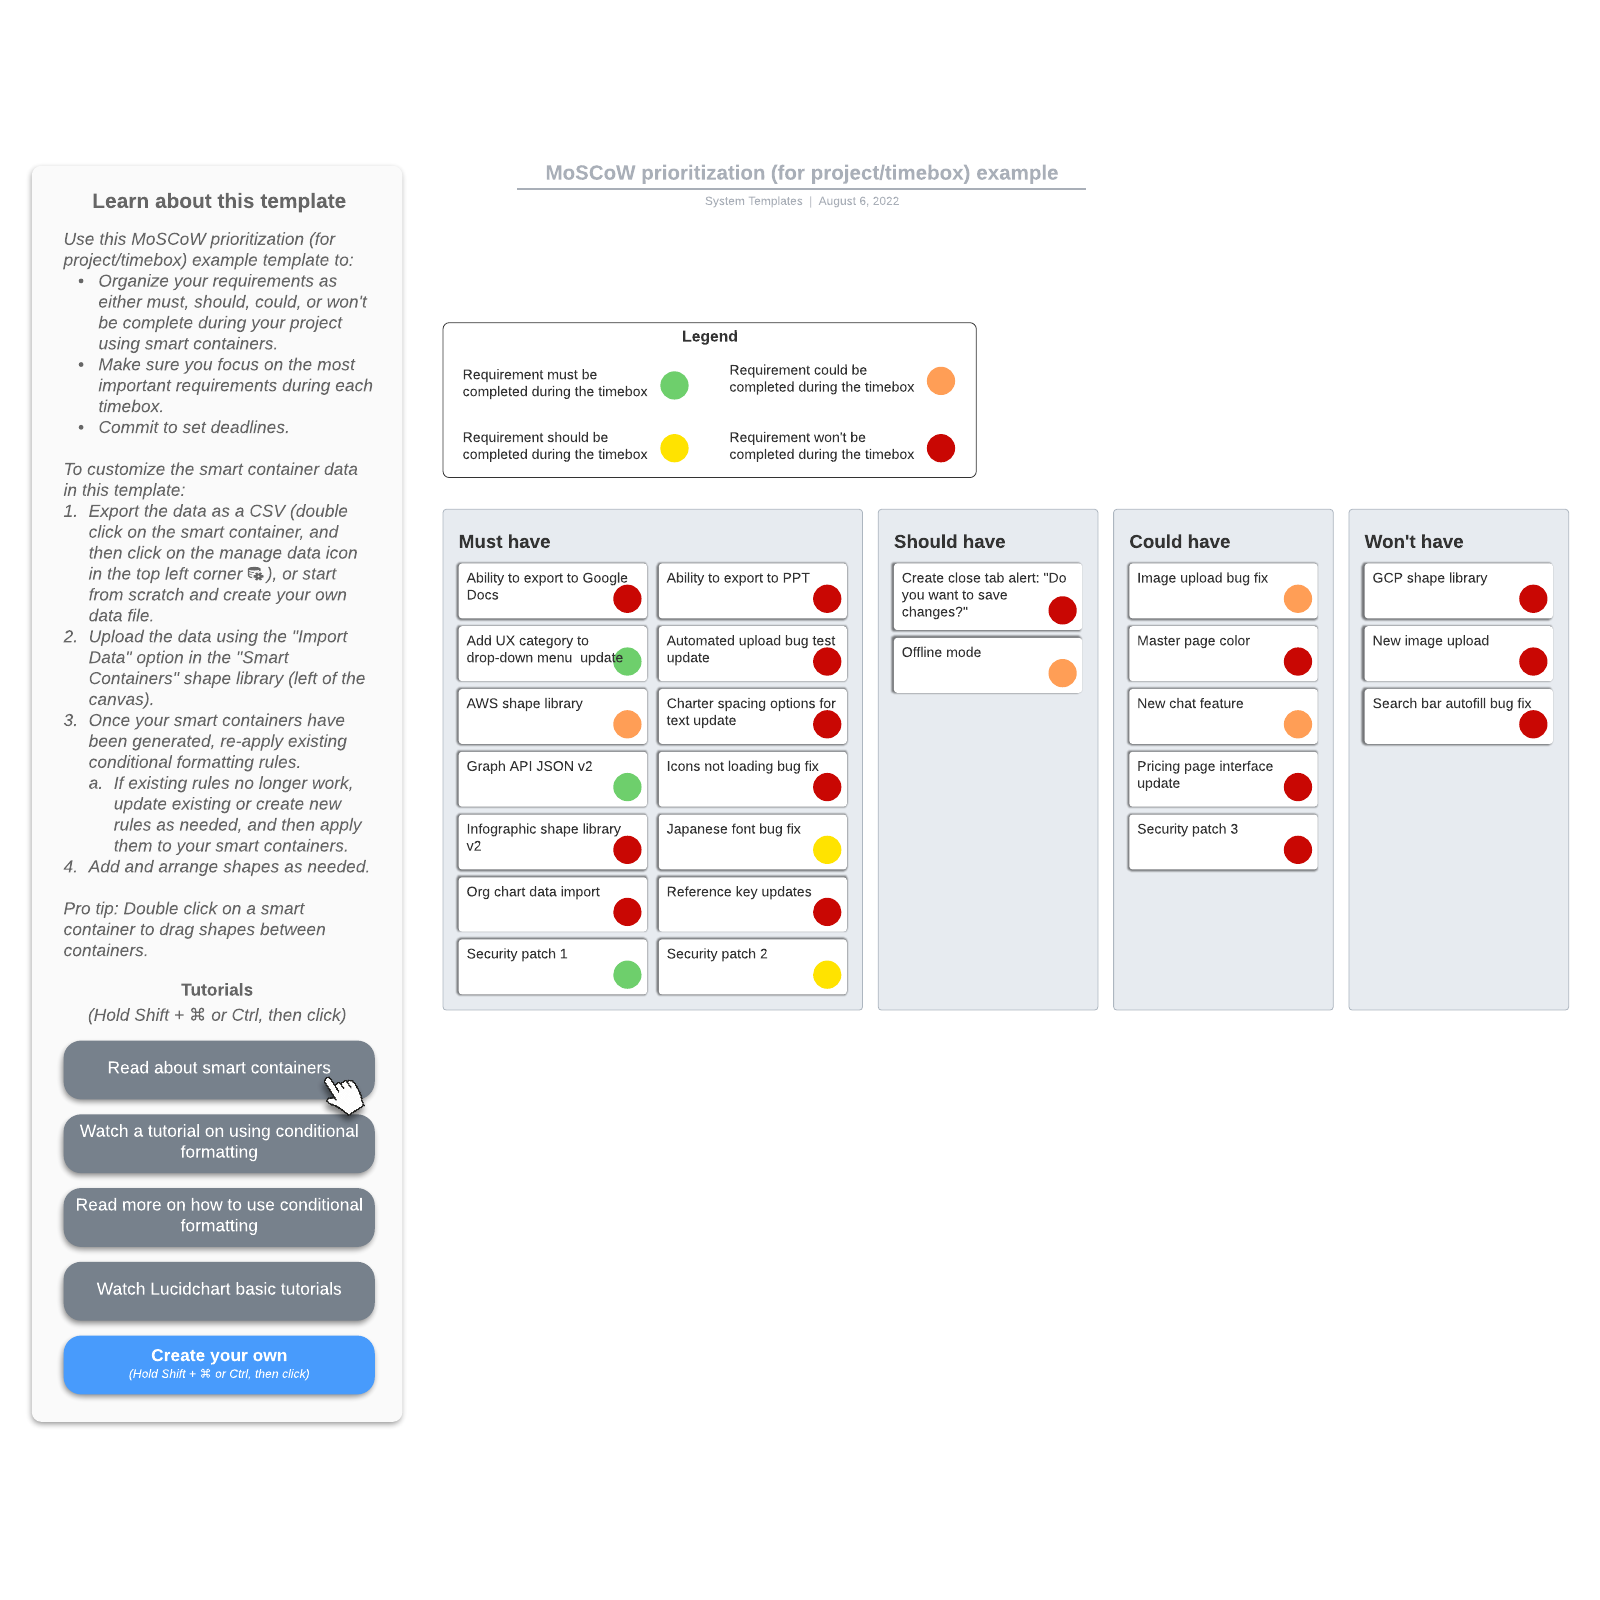 MoSCoW prioritization (for project/timebox) example